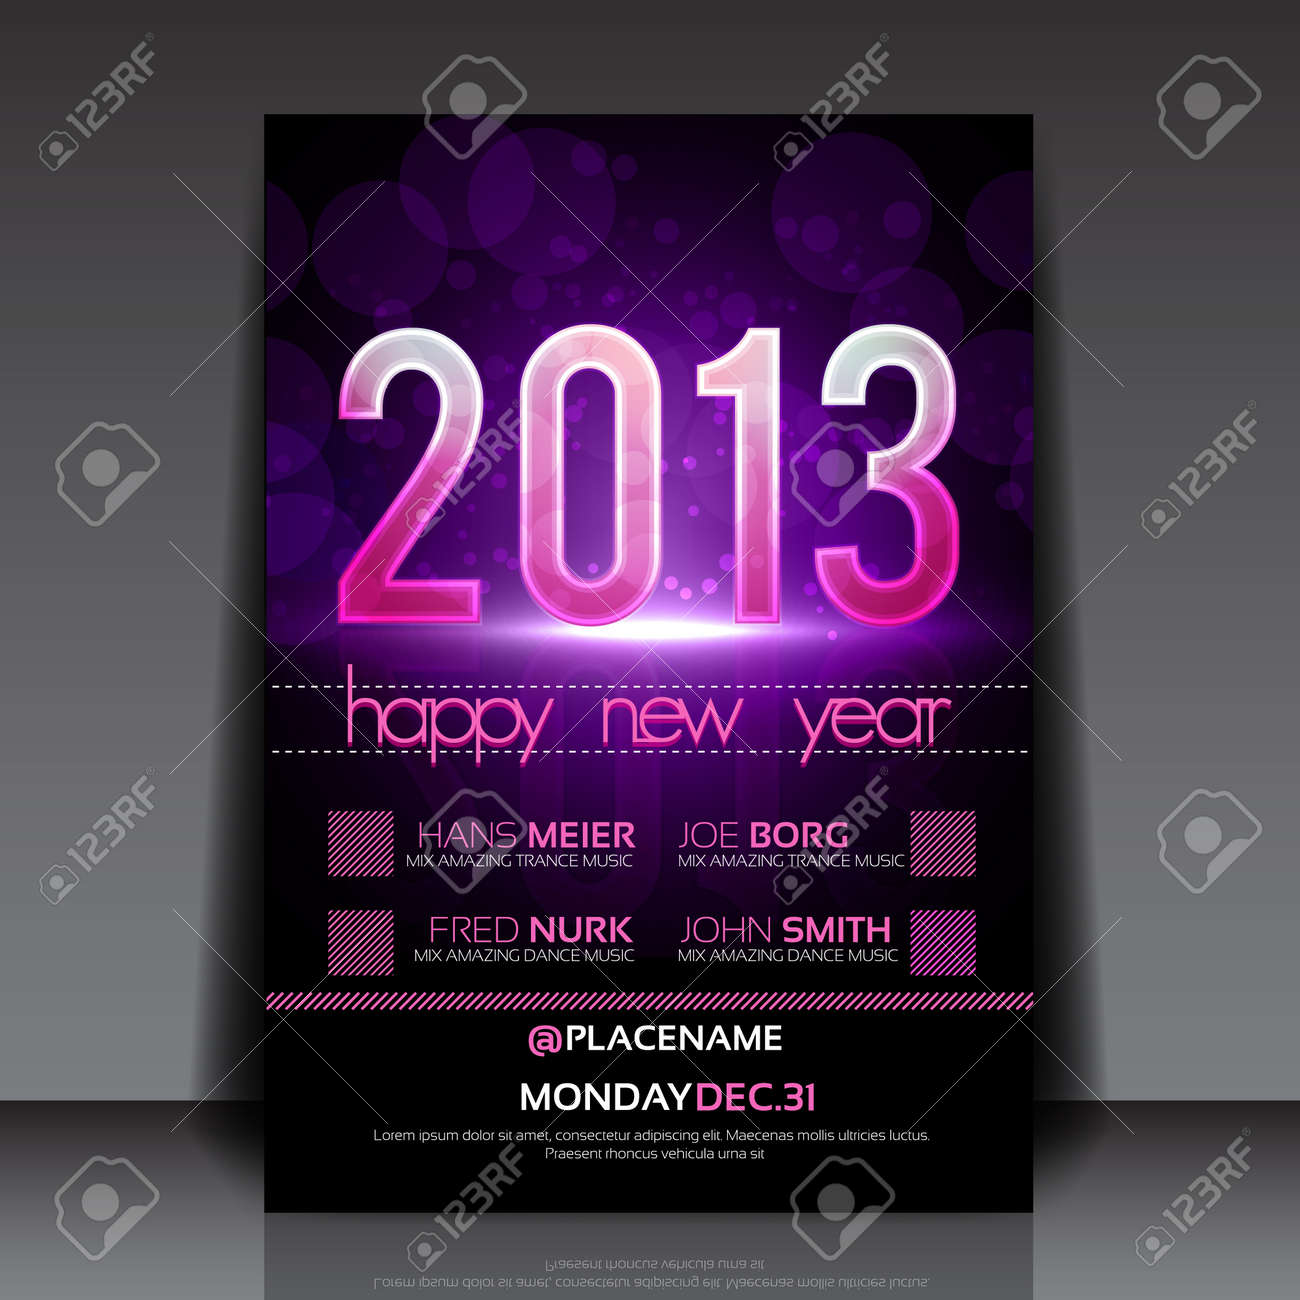 Happy New Year 2013 Purple Editable Flyer Template Royalty Free